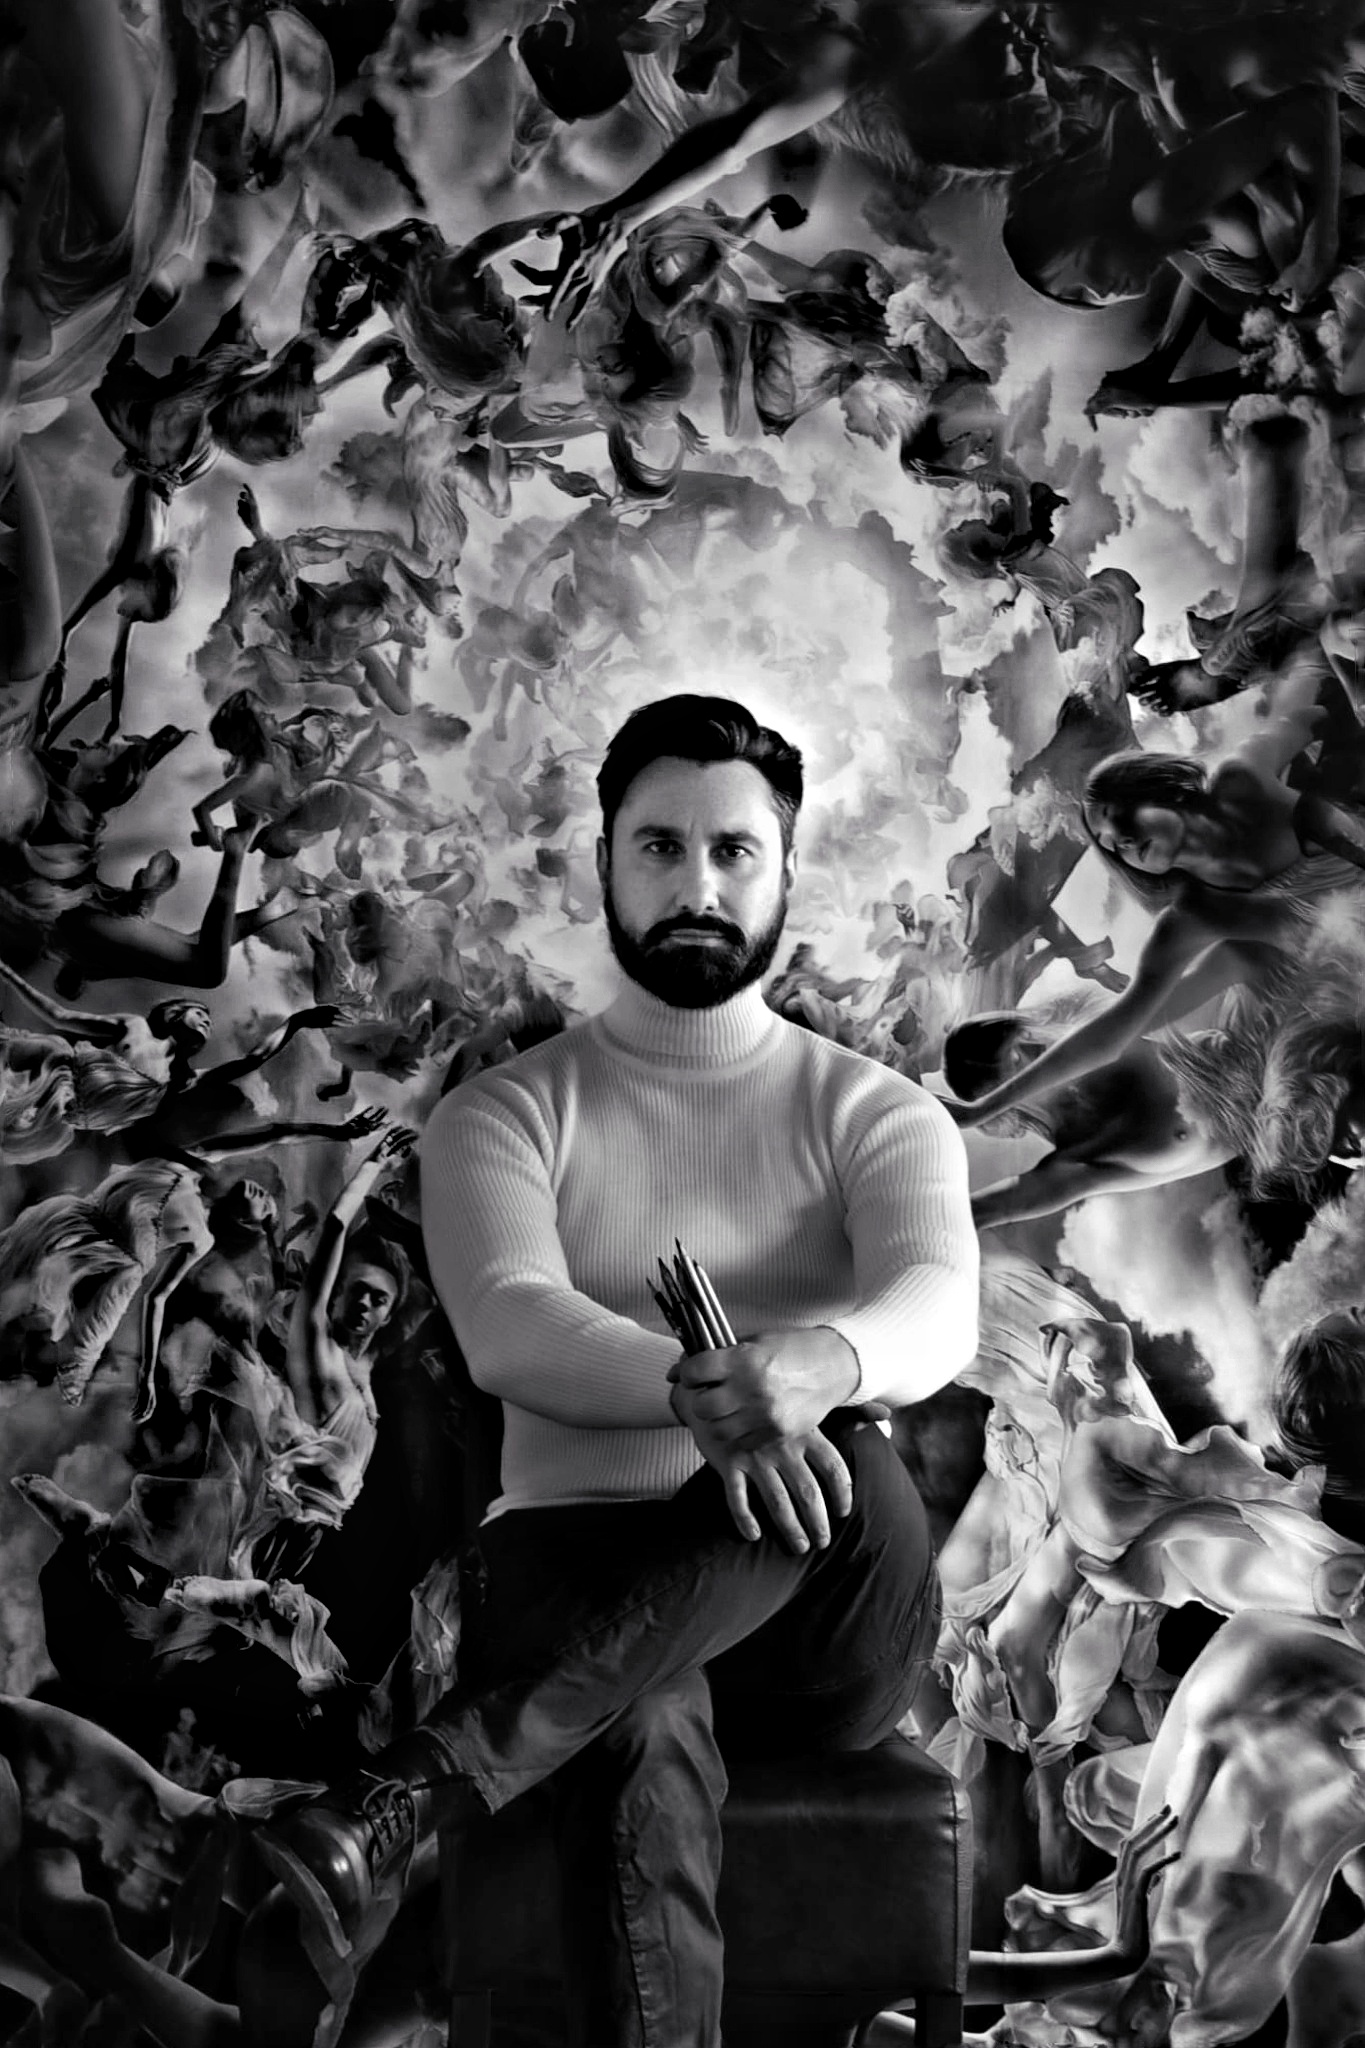 Emanuele Dascanio in front oh his drawing 250 x 250 cm The Natura Universi - This artwork is a drawing in fine art, drawing with renassaince technique, size 90 x 63 cm and made in 2013. , an artwork hyperrealistic or fine art made by Emanuele Dascanio. Emanuele Dascanio make aalso workshop and masterclass, he teach drawing, how to draw, he expose in all over the world. Emanuele Dascanio is a master of contemporary art and he exposed in all museums and private collections of art.